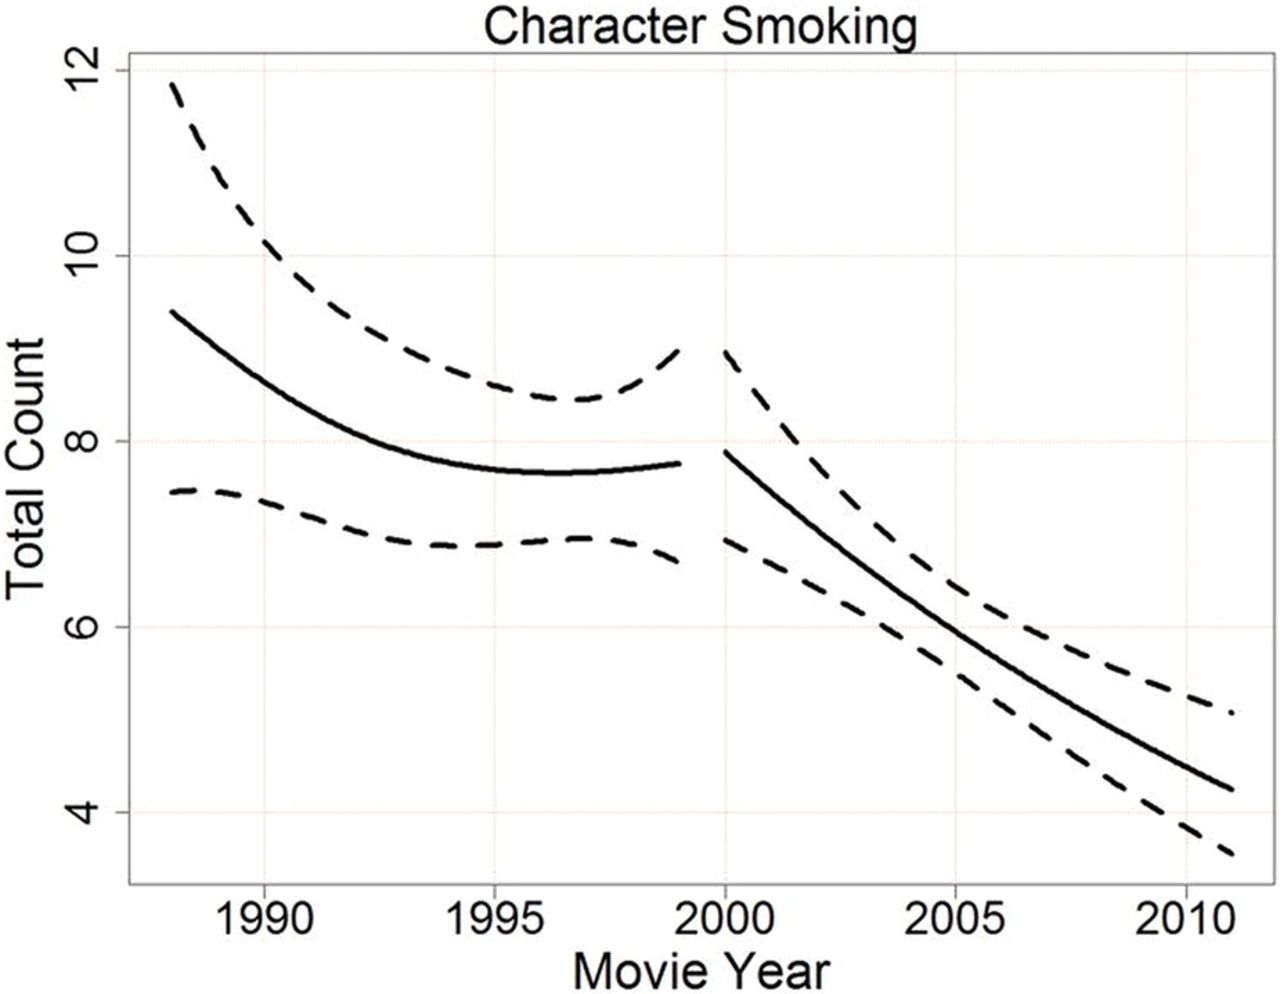 Did limits on payments for tobacco placements in US movies